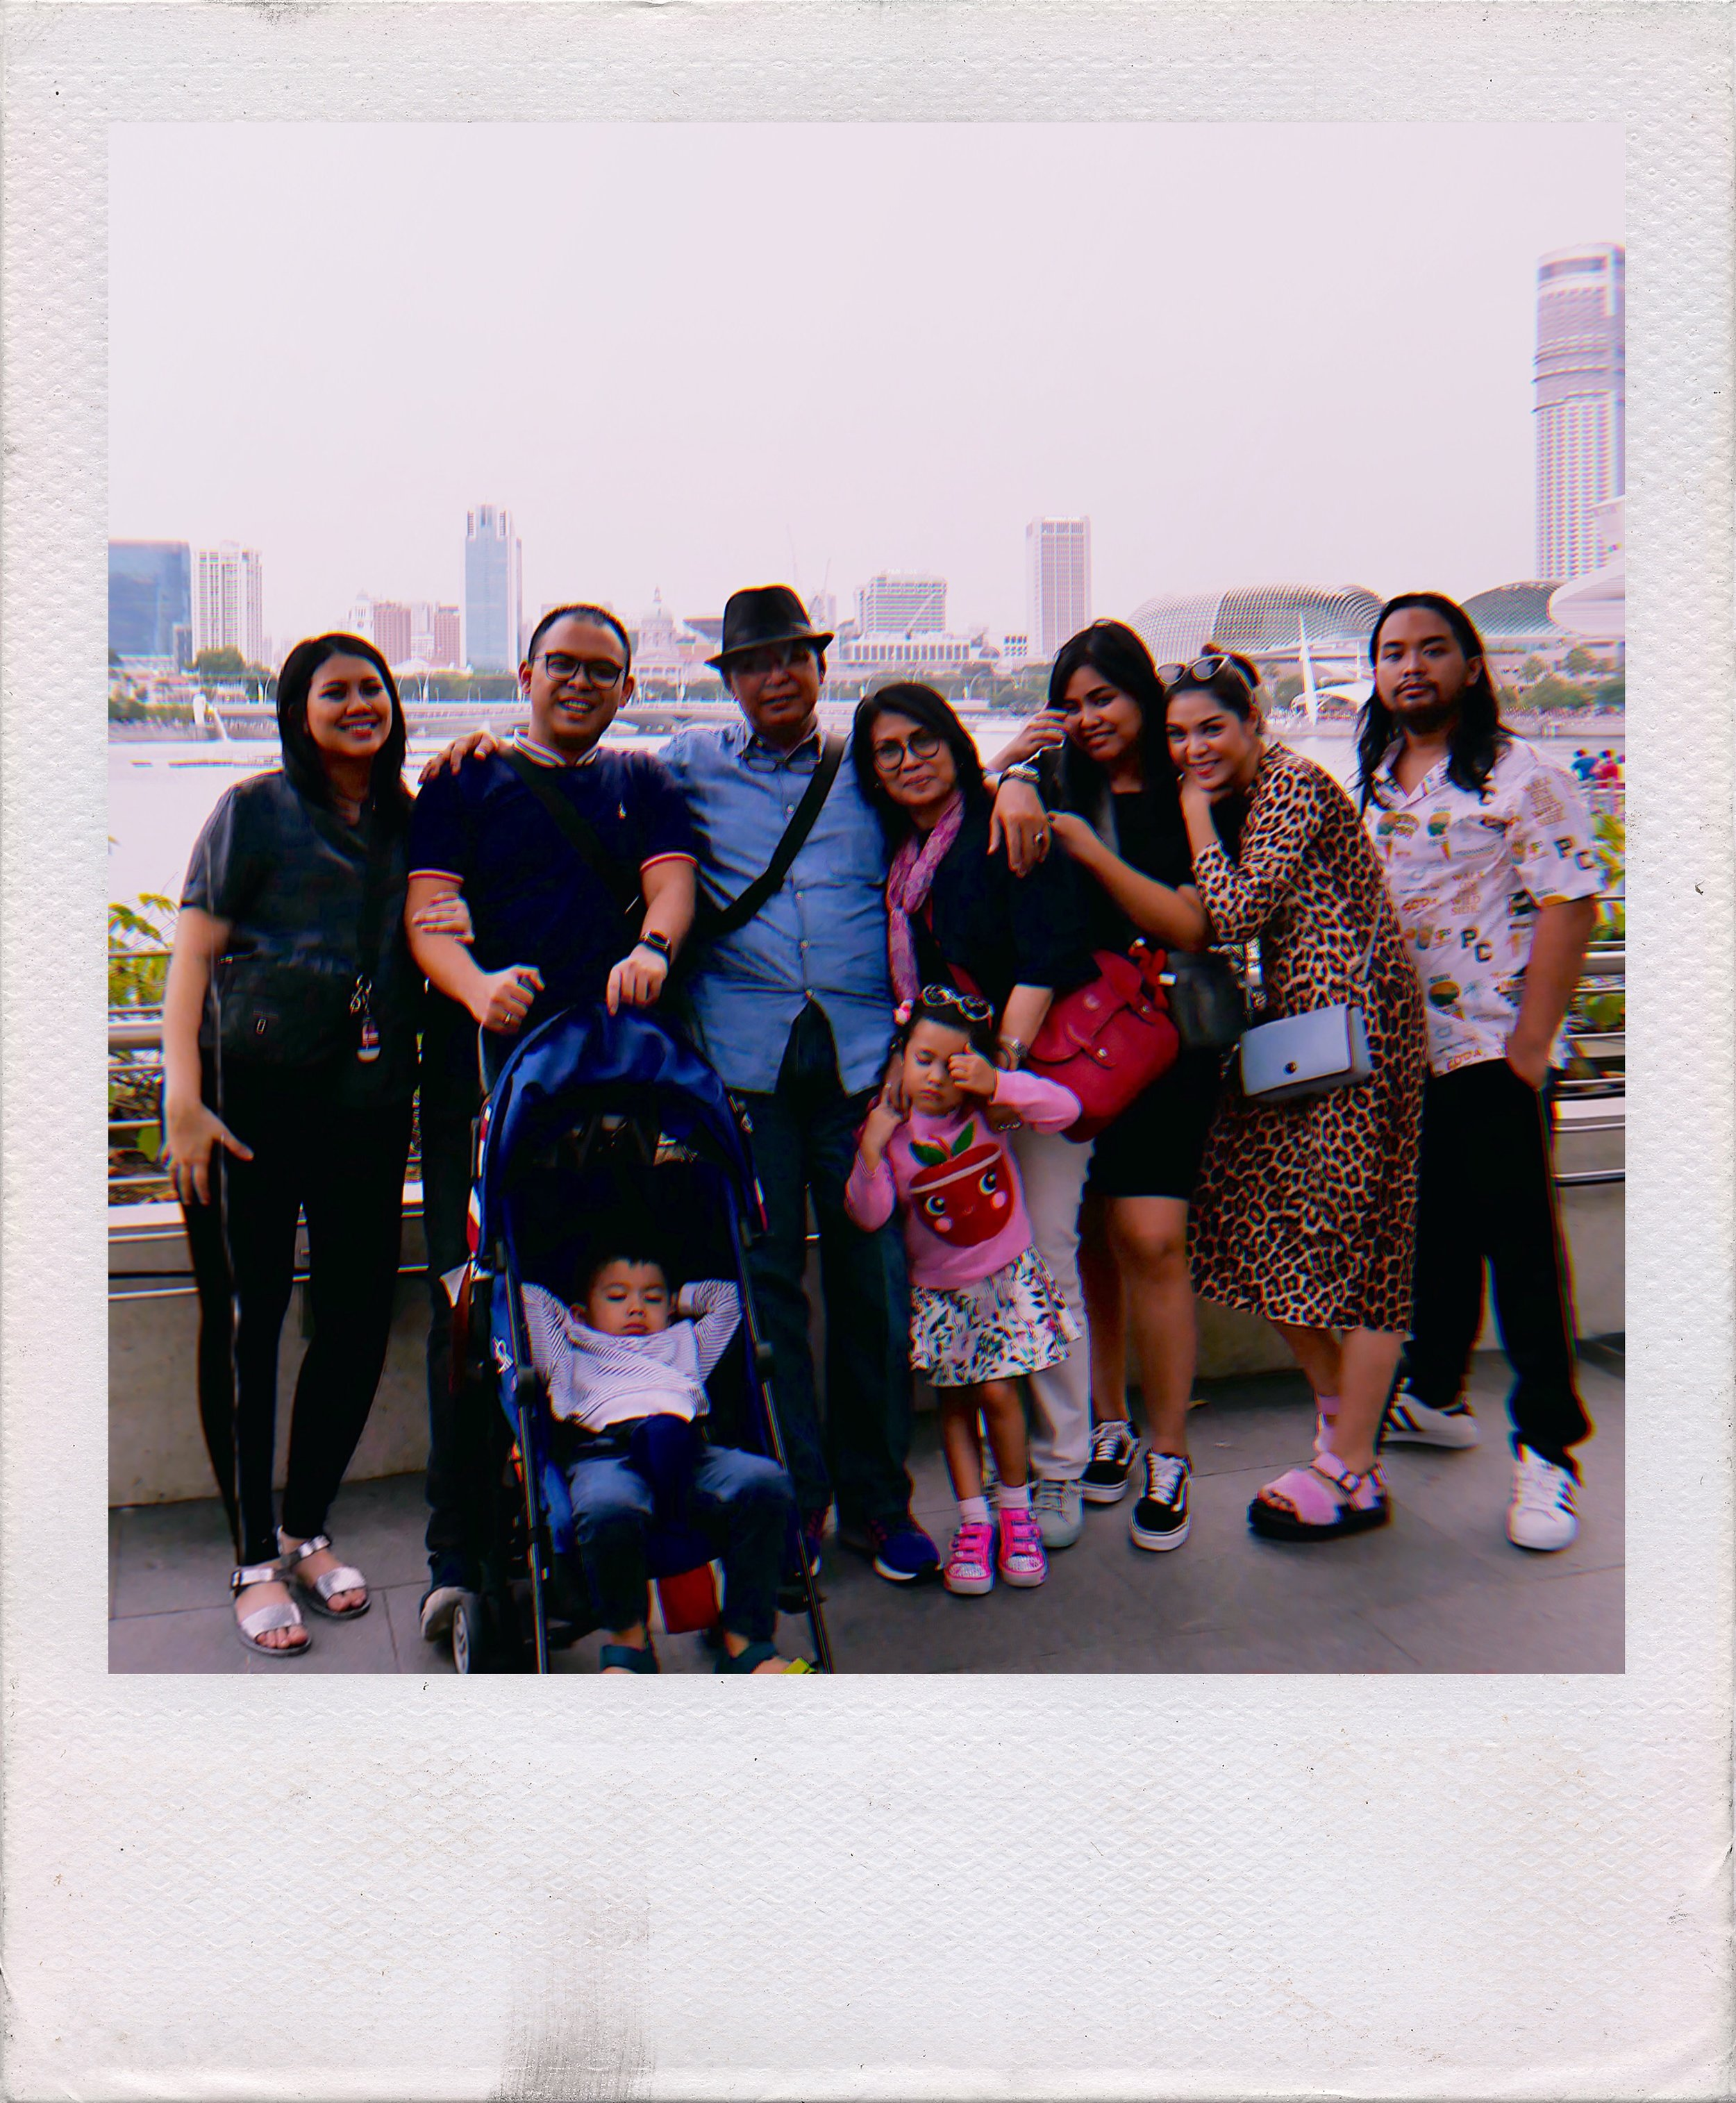 Singapore_Day_1_Marina_Bay_Sands_York_Hotel_Changi.jpg